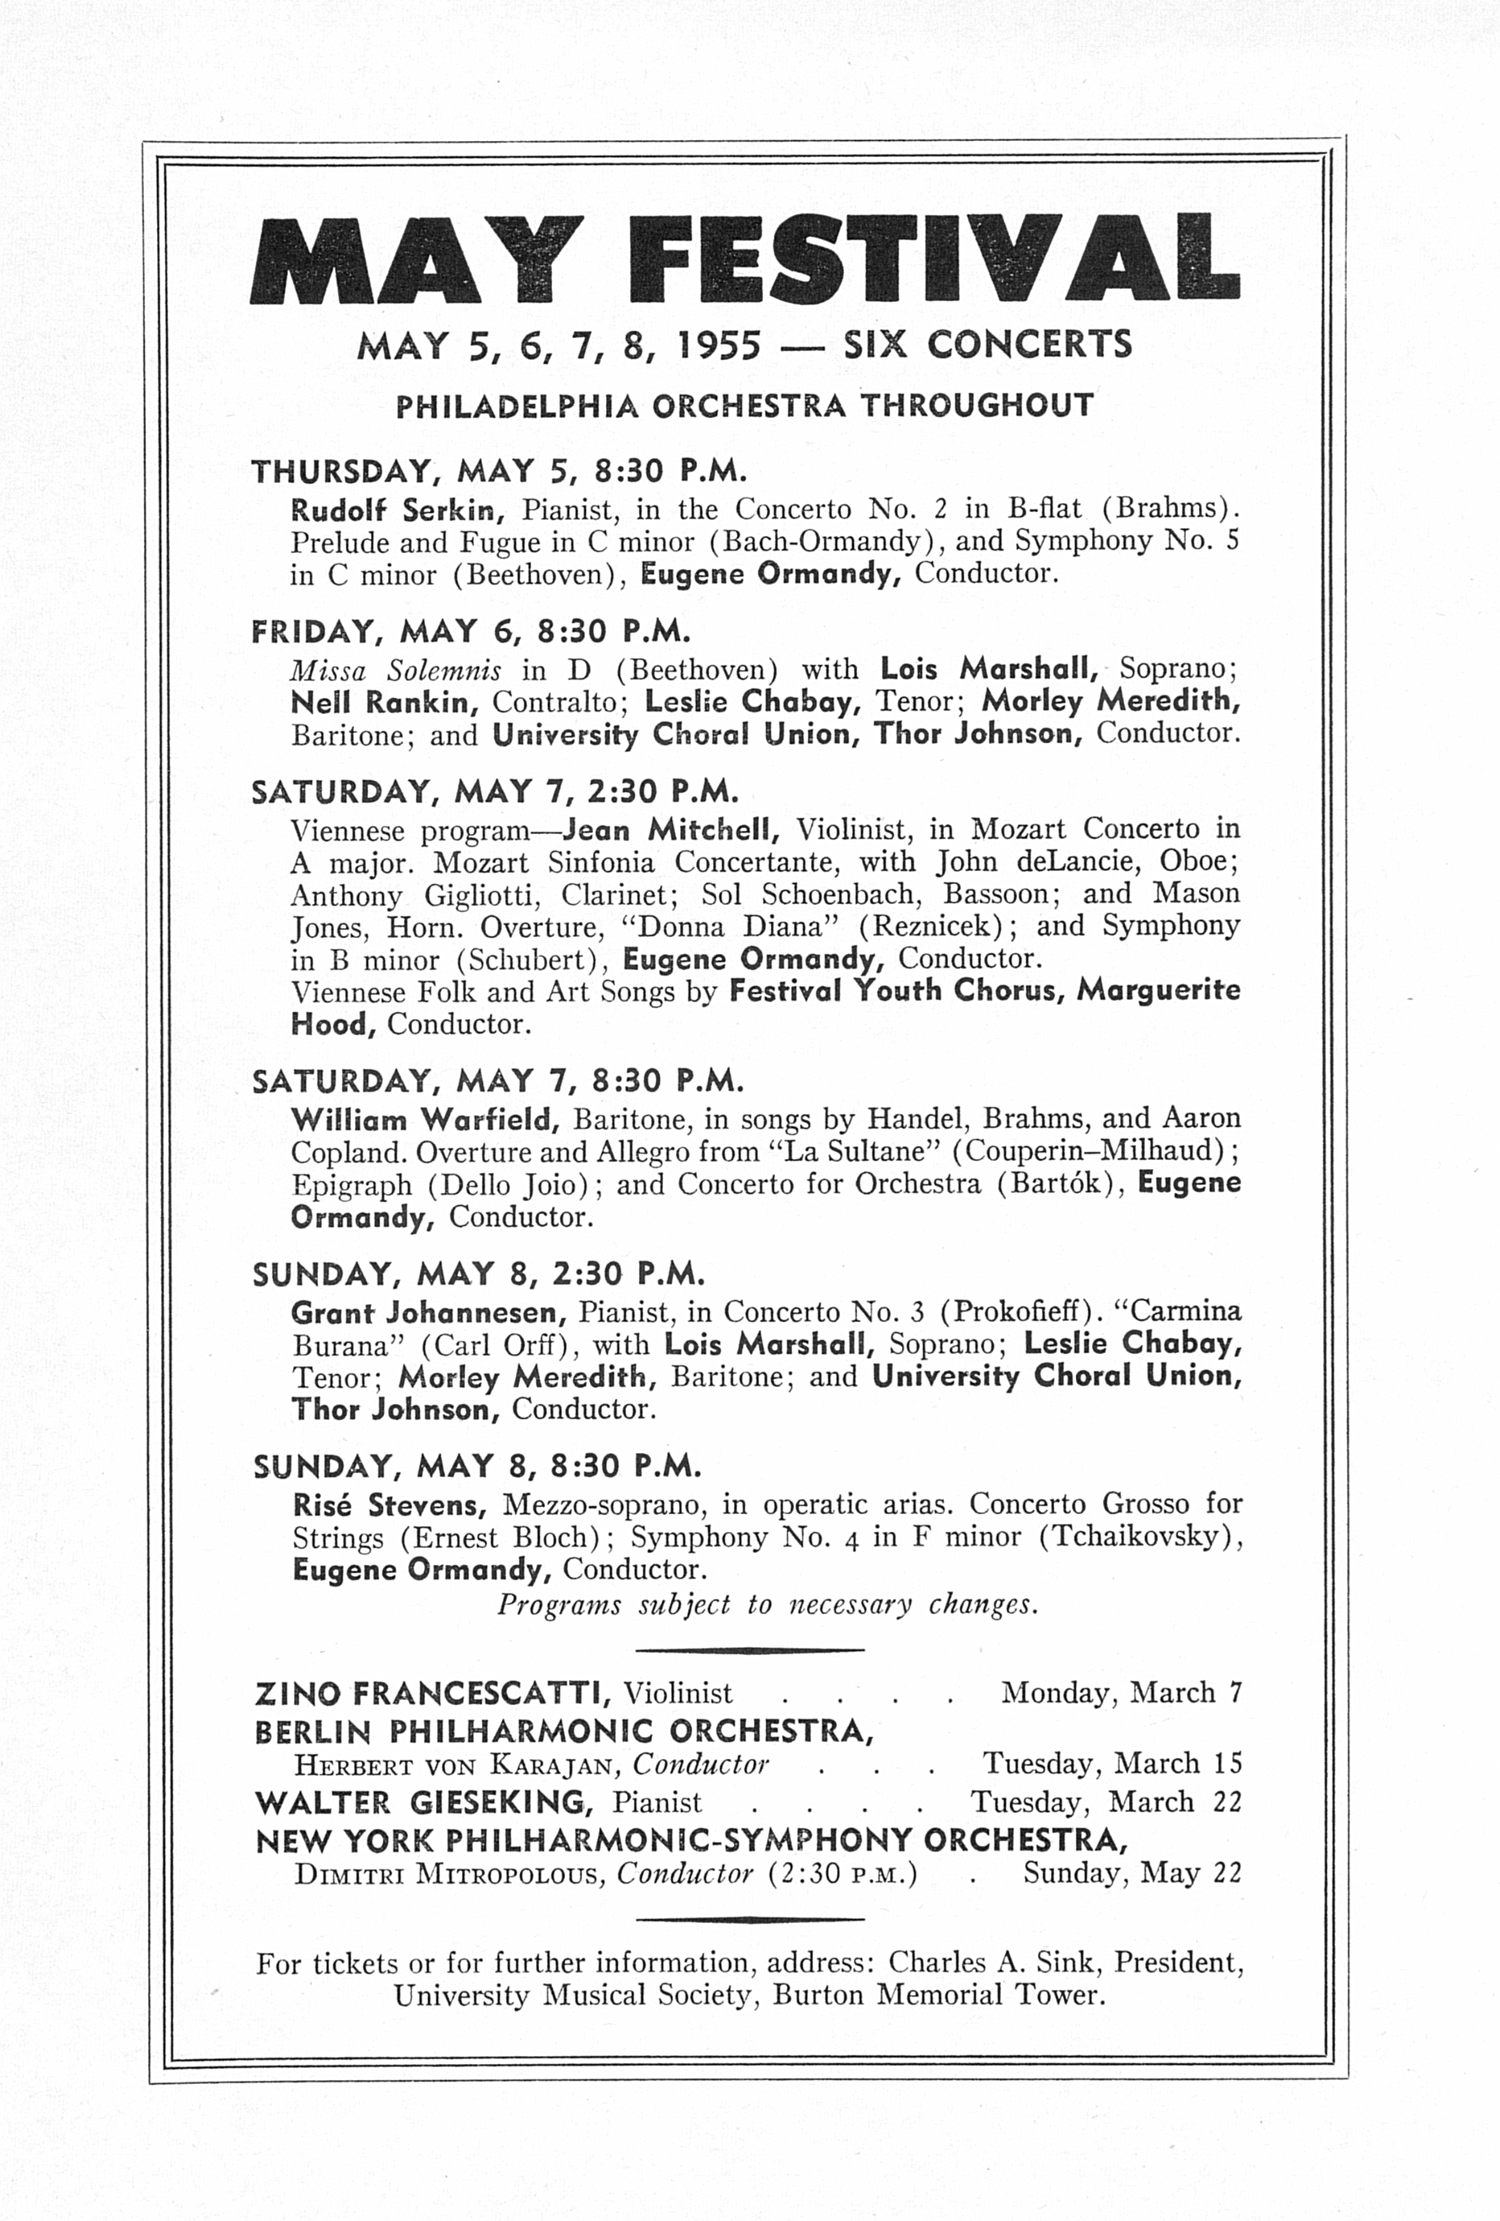 UMS Concert Program, February 18, 1955: Fifteenth Annual Chamber Music Festival -- Budapest String Quartet image